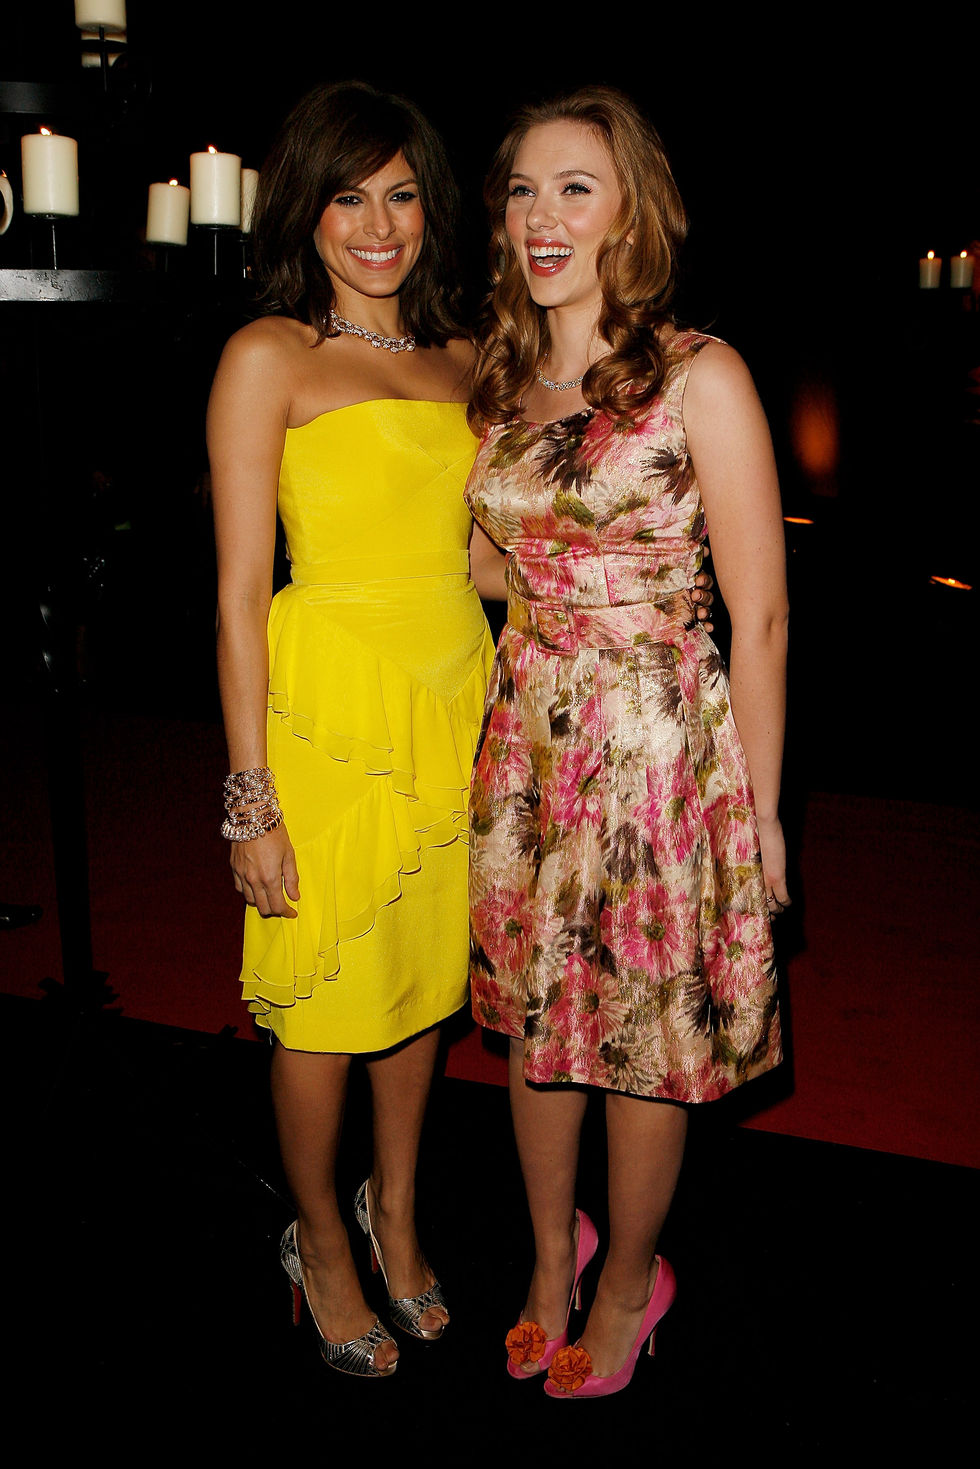 eva-mendes-and-scarlett-johansson-the-spirit-launch-party-in-london-06